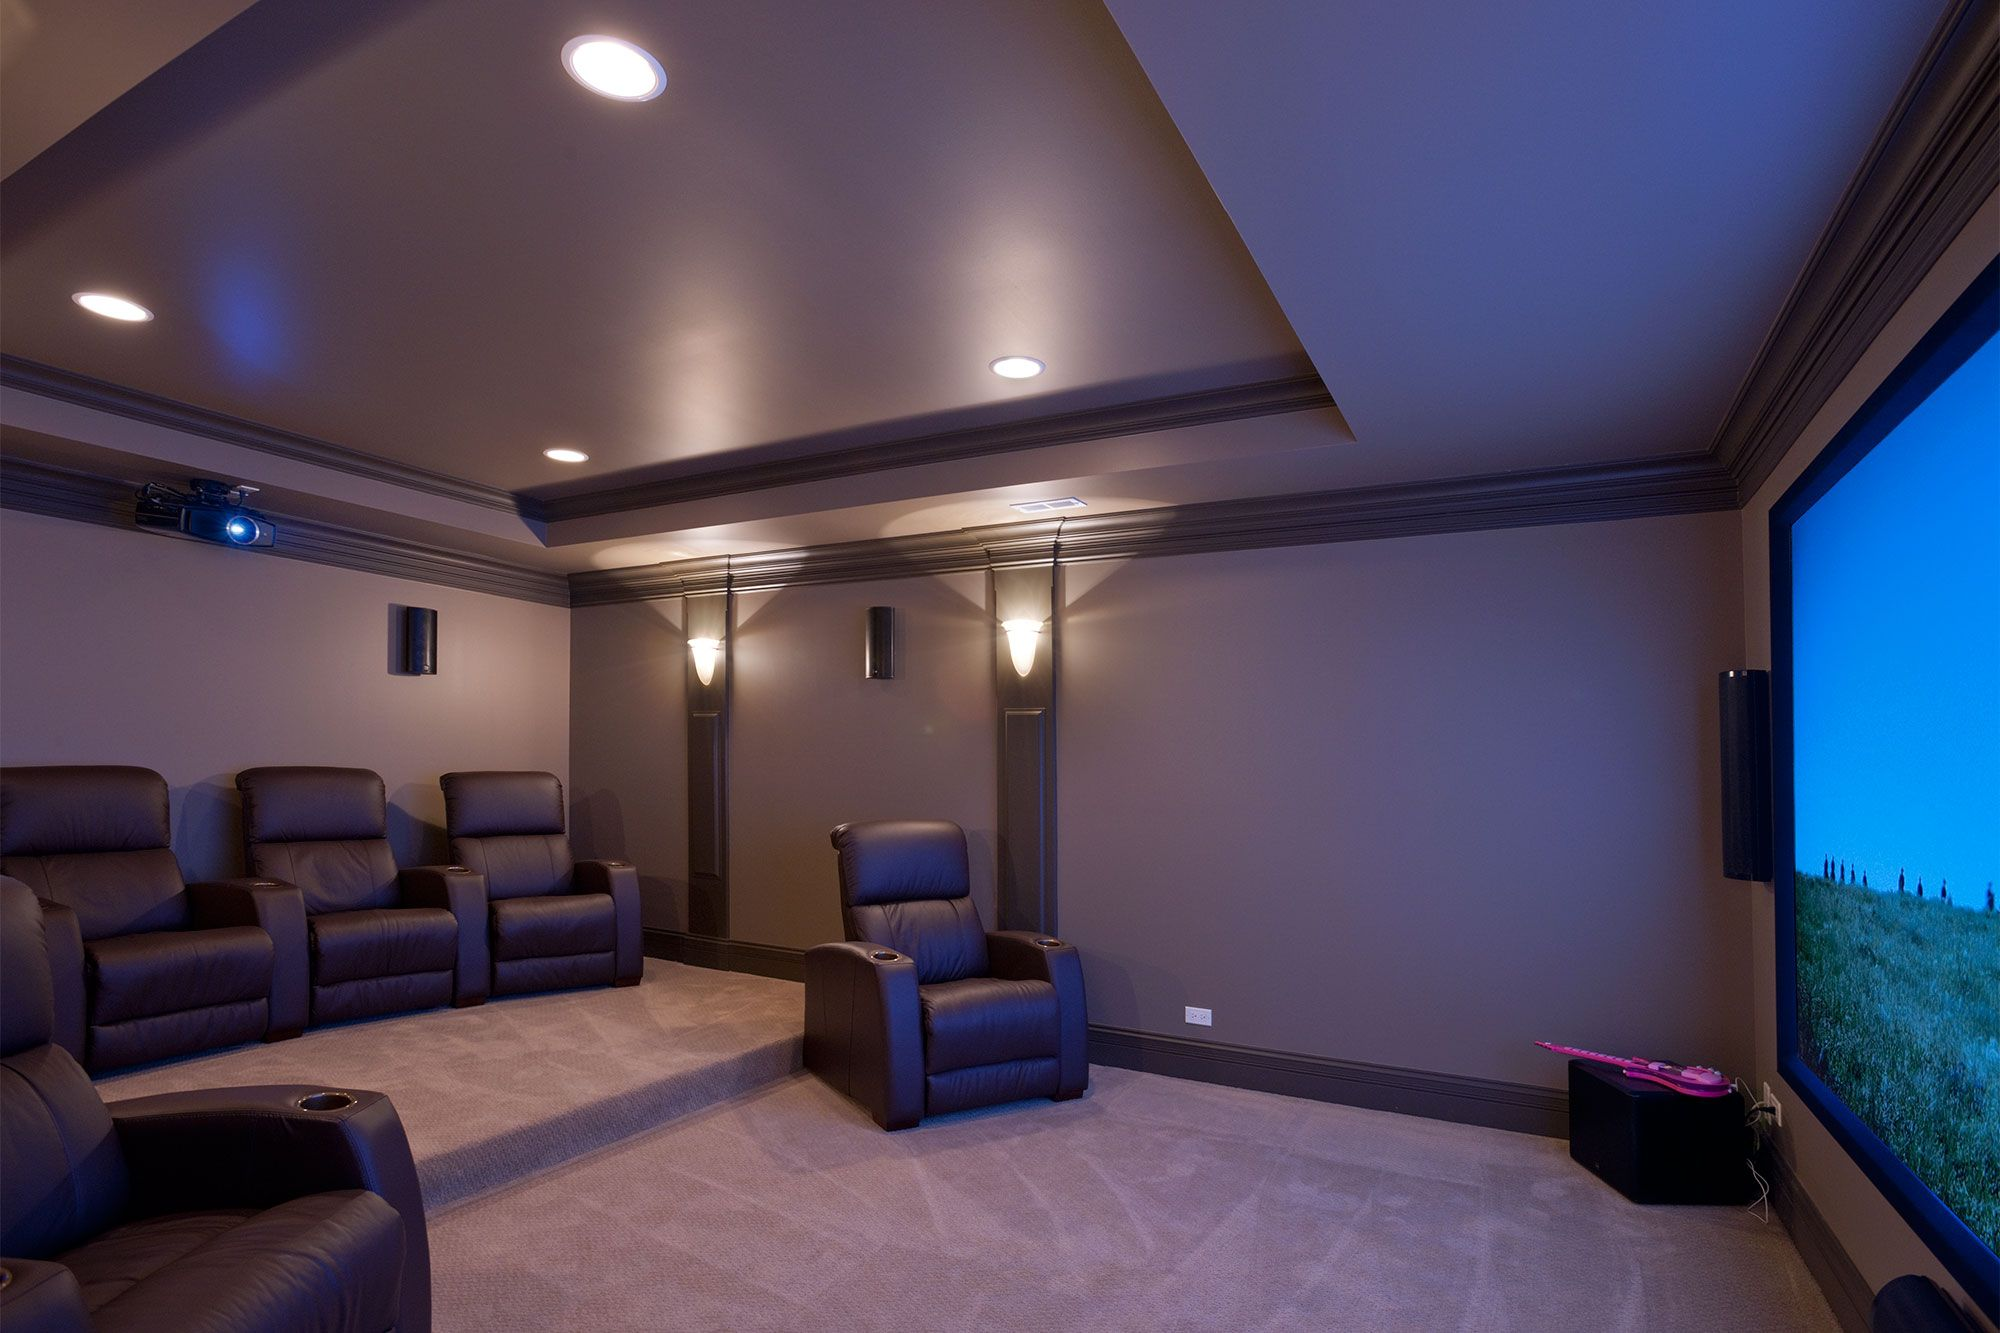 Wiring Speakers In Basement Theatre Google Search Home Theater Design